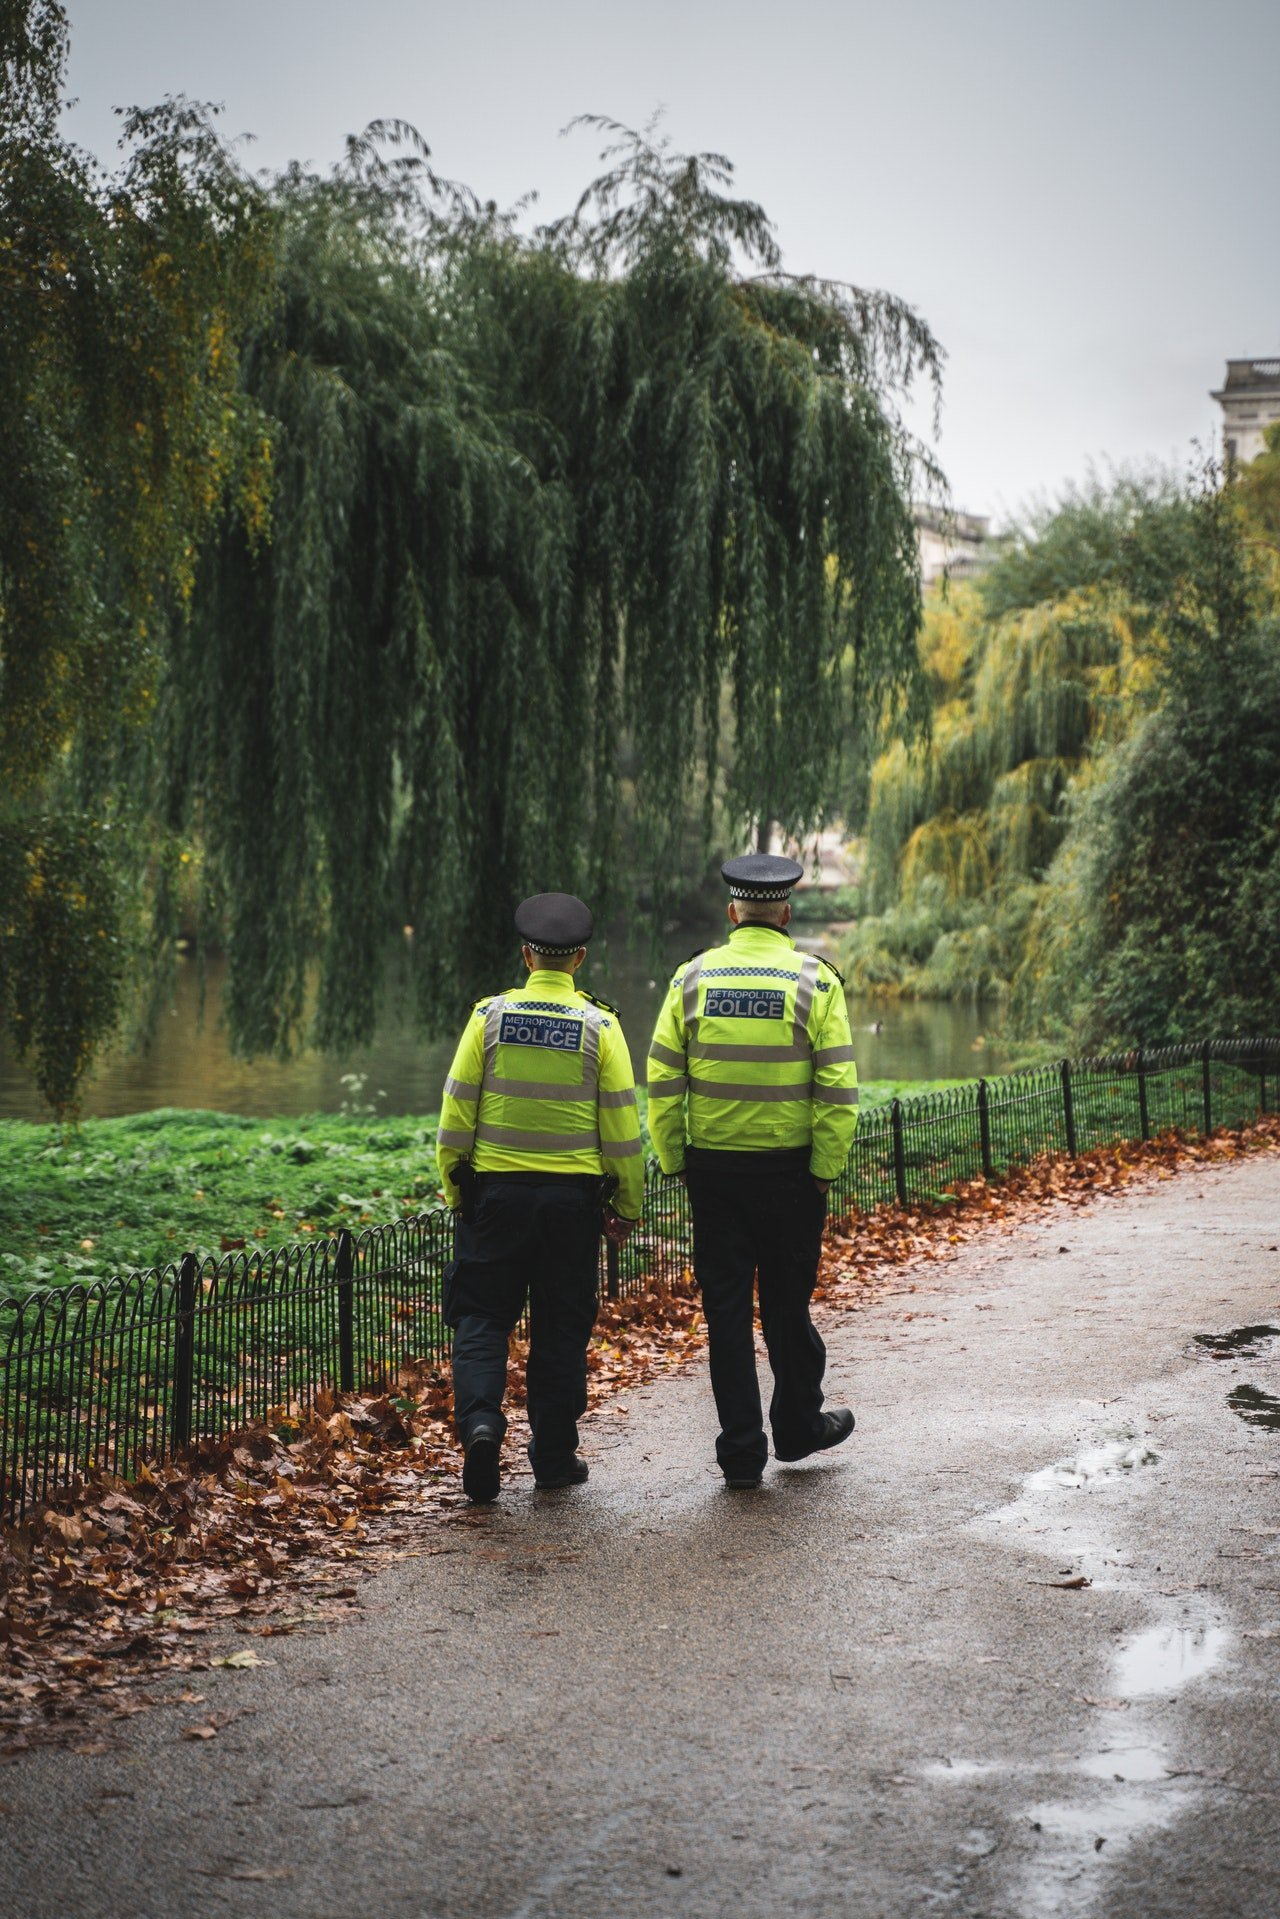 Two police officers walking down the road   Photo: Getty Images